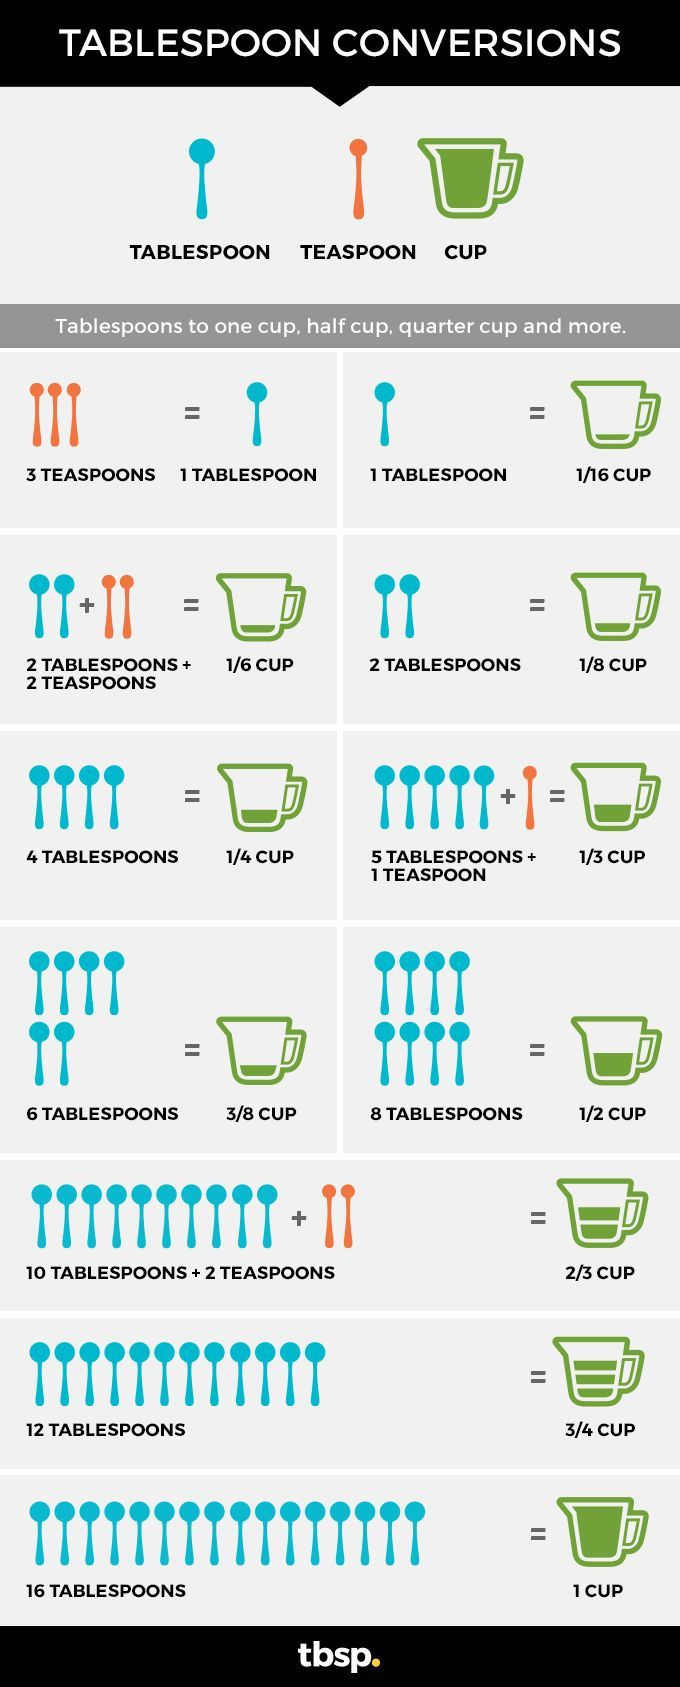 Keep this conversion chart of tablespoons to cups and teaspoons to tablespoons handy. It is useful when having to make adjustments so your recipe will turn out just right.